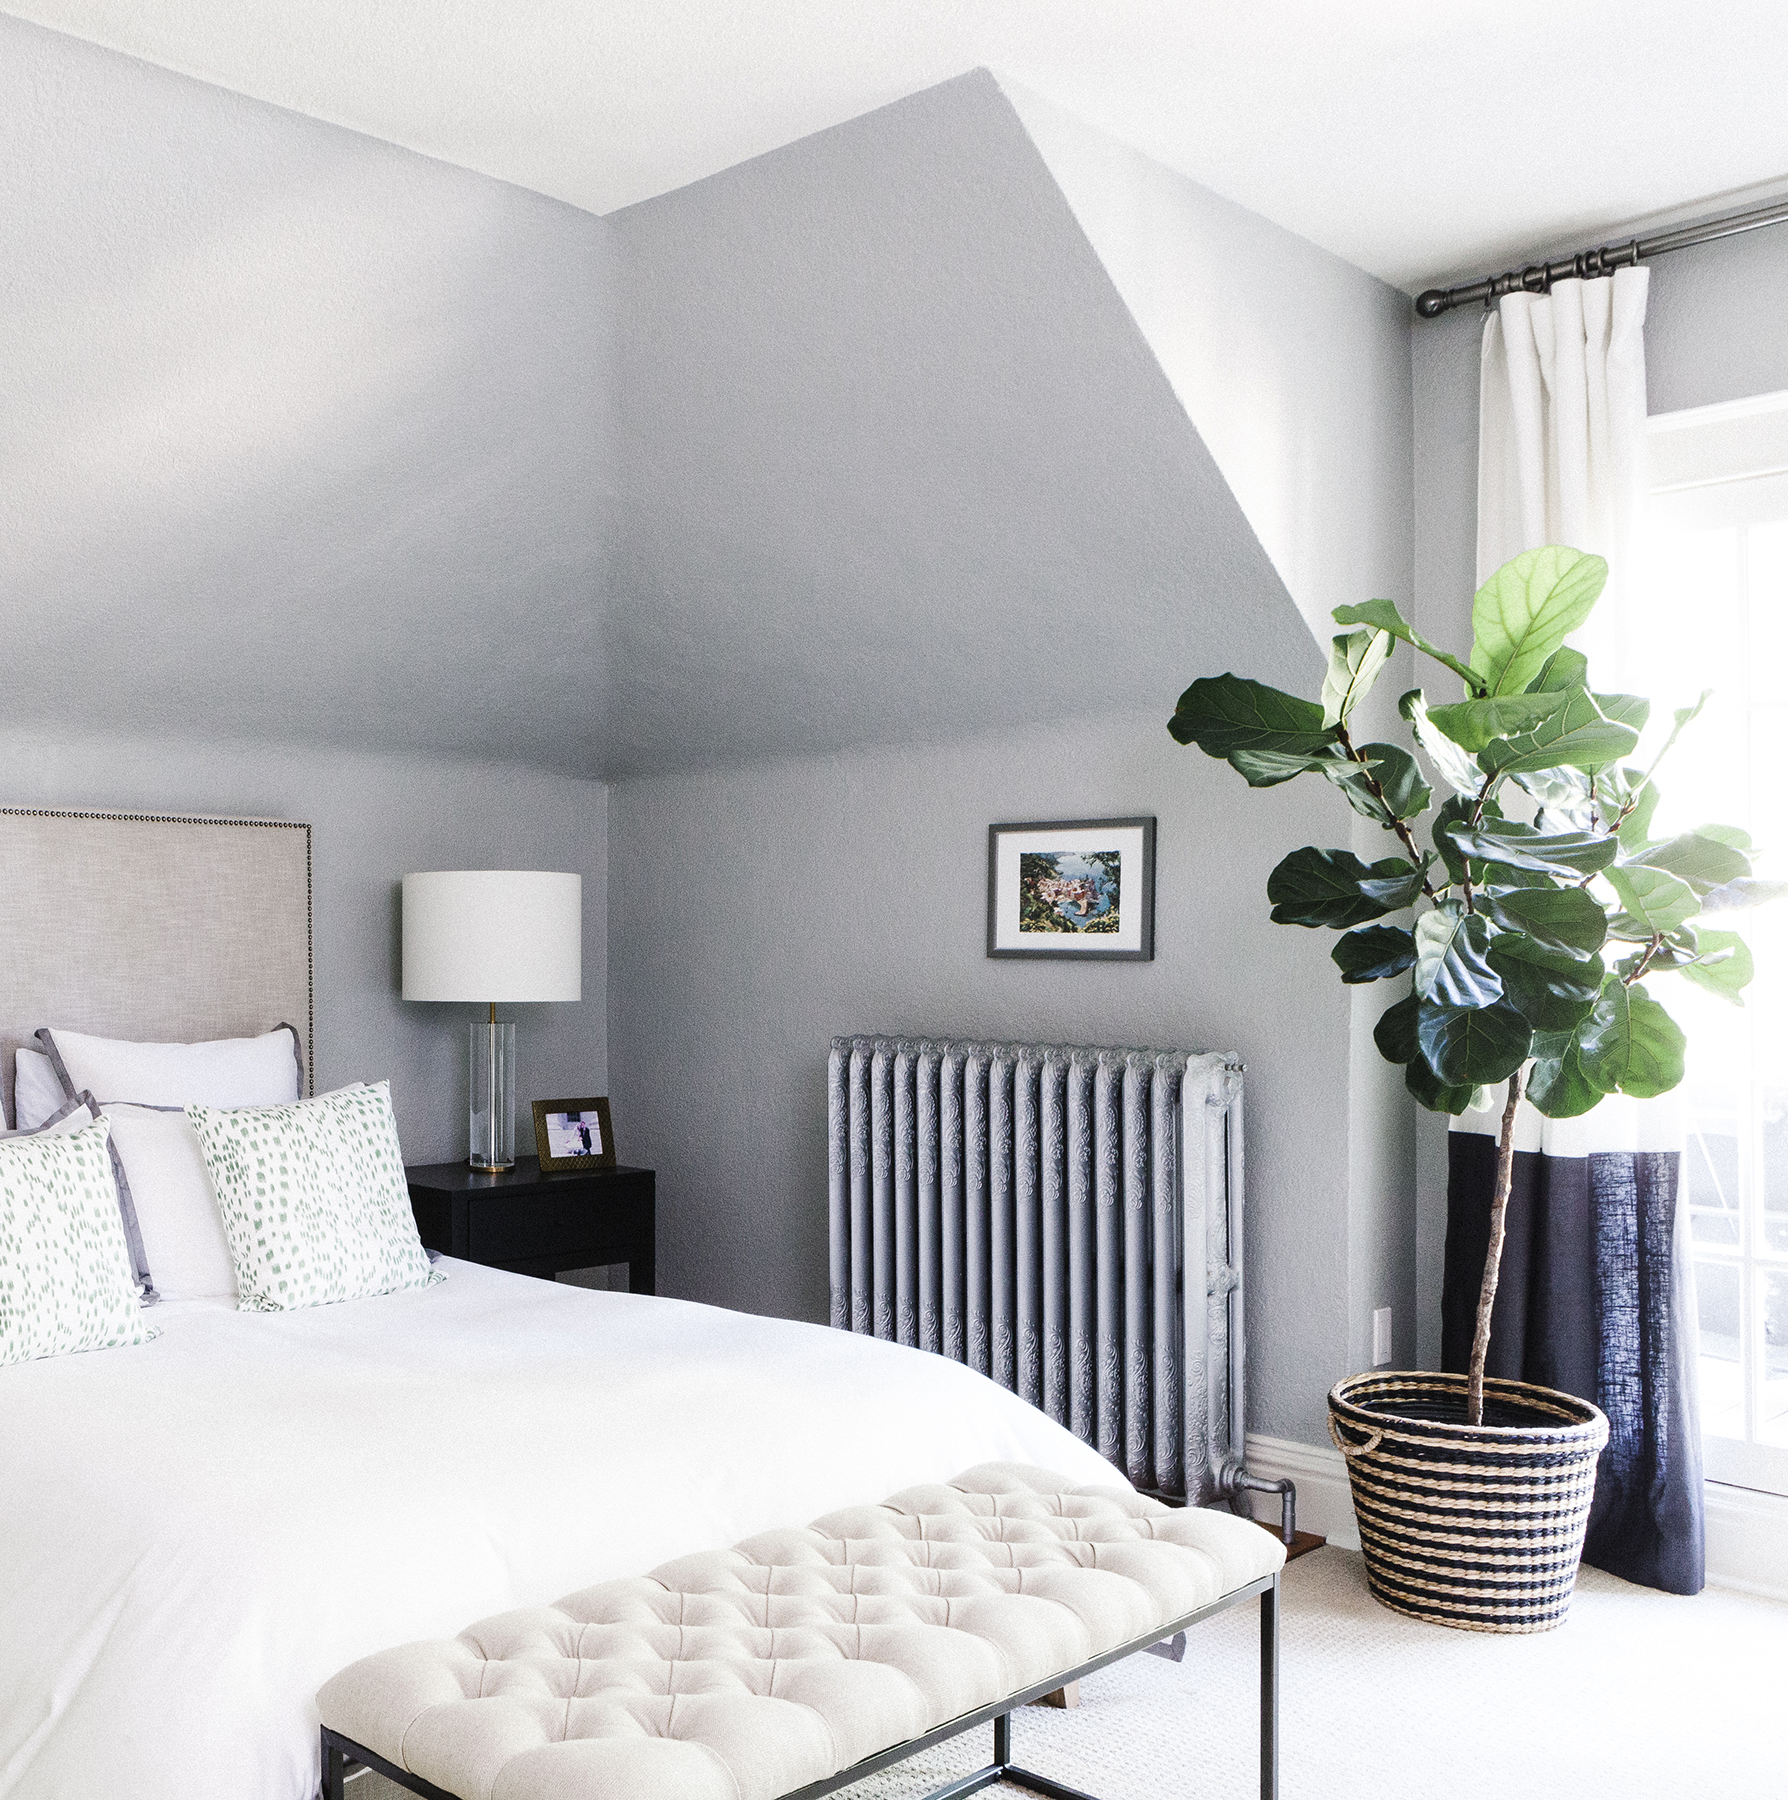 Bedroom with fiddle leaf fig tree and bench